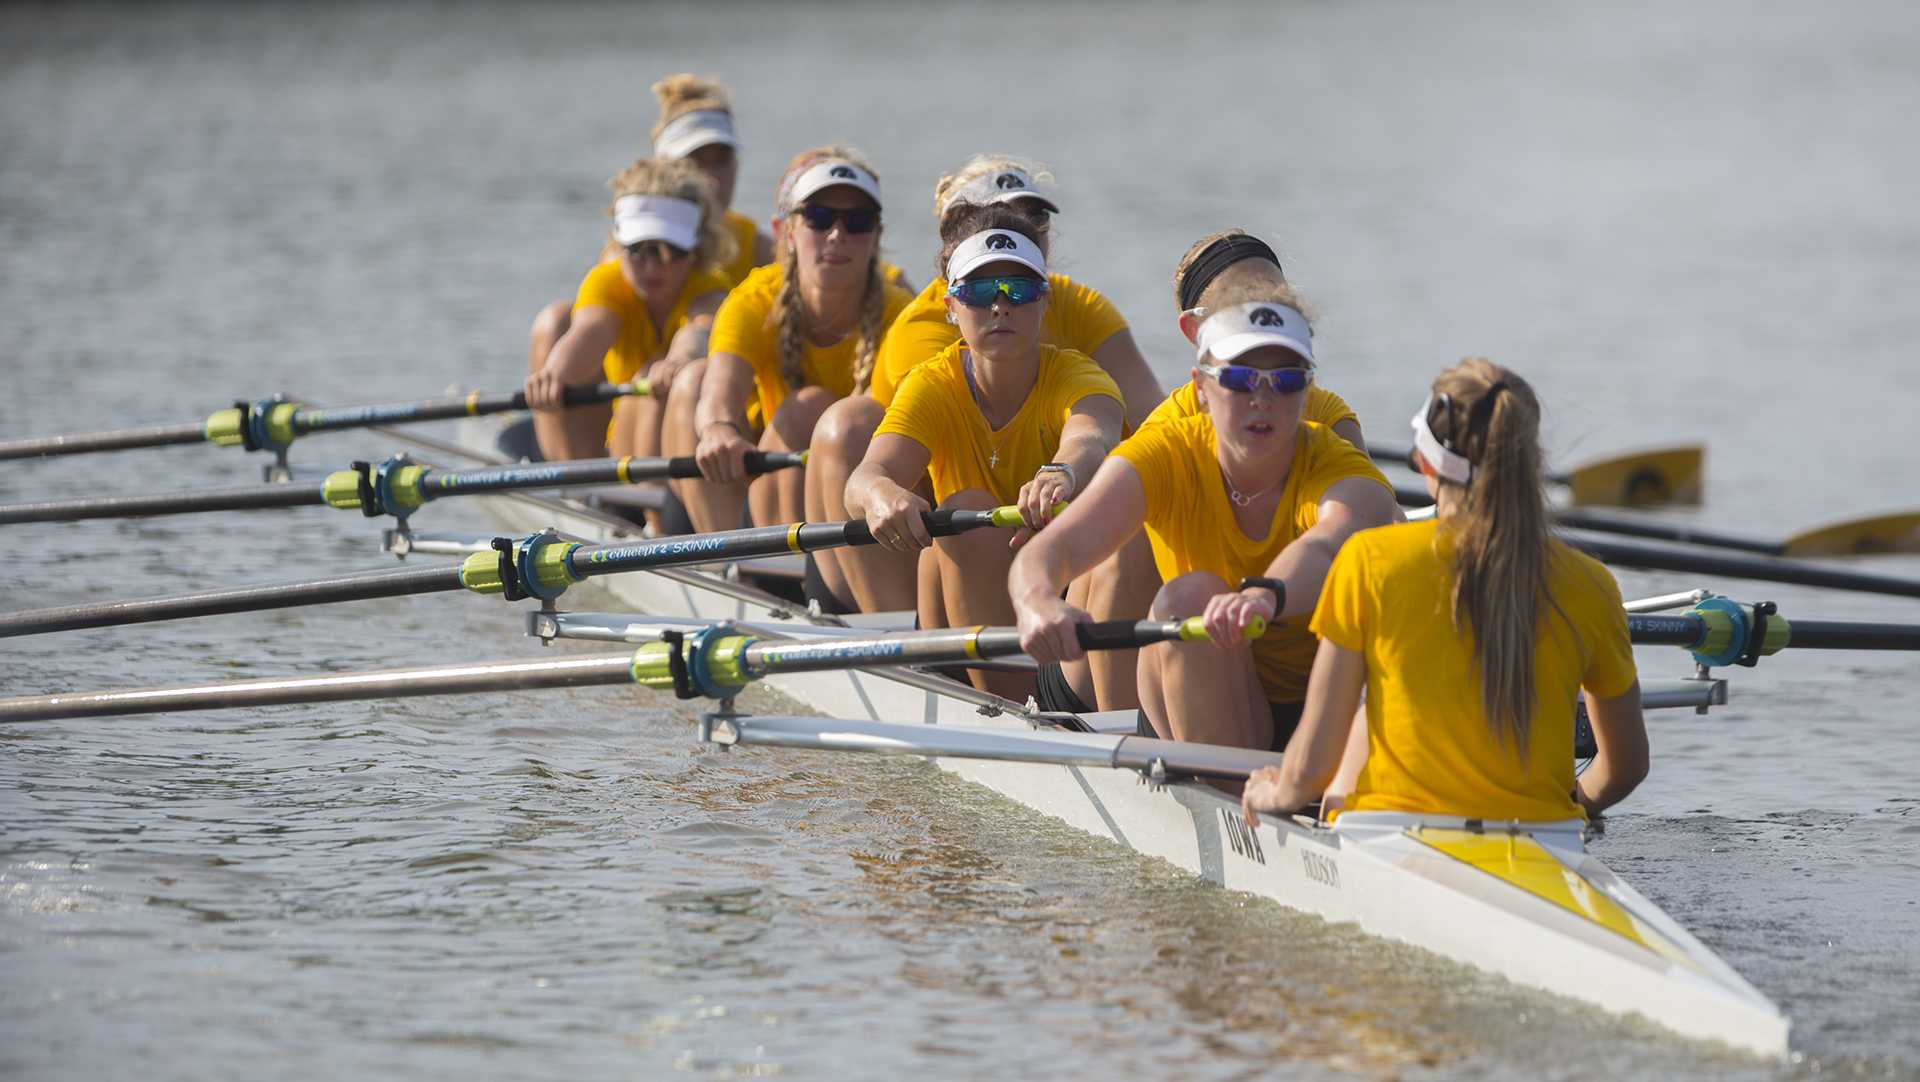 Iowa's rowing team practices on the Iowa River on Friday, Sept. 15, 2017.